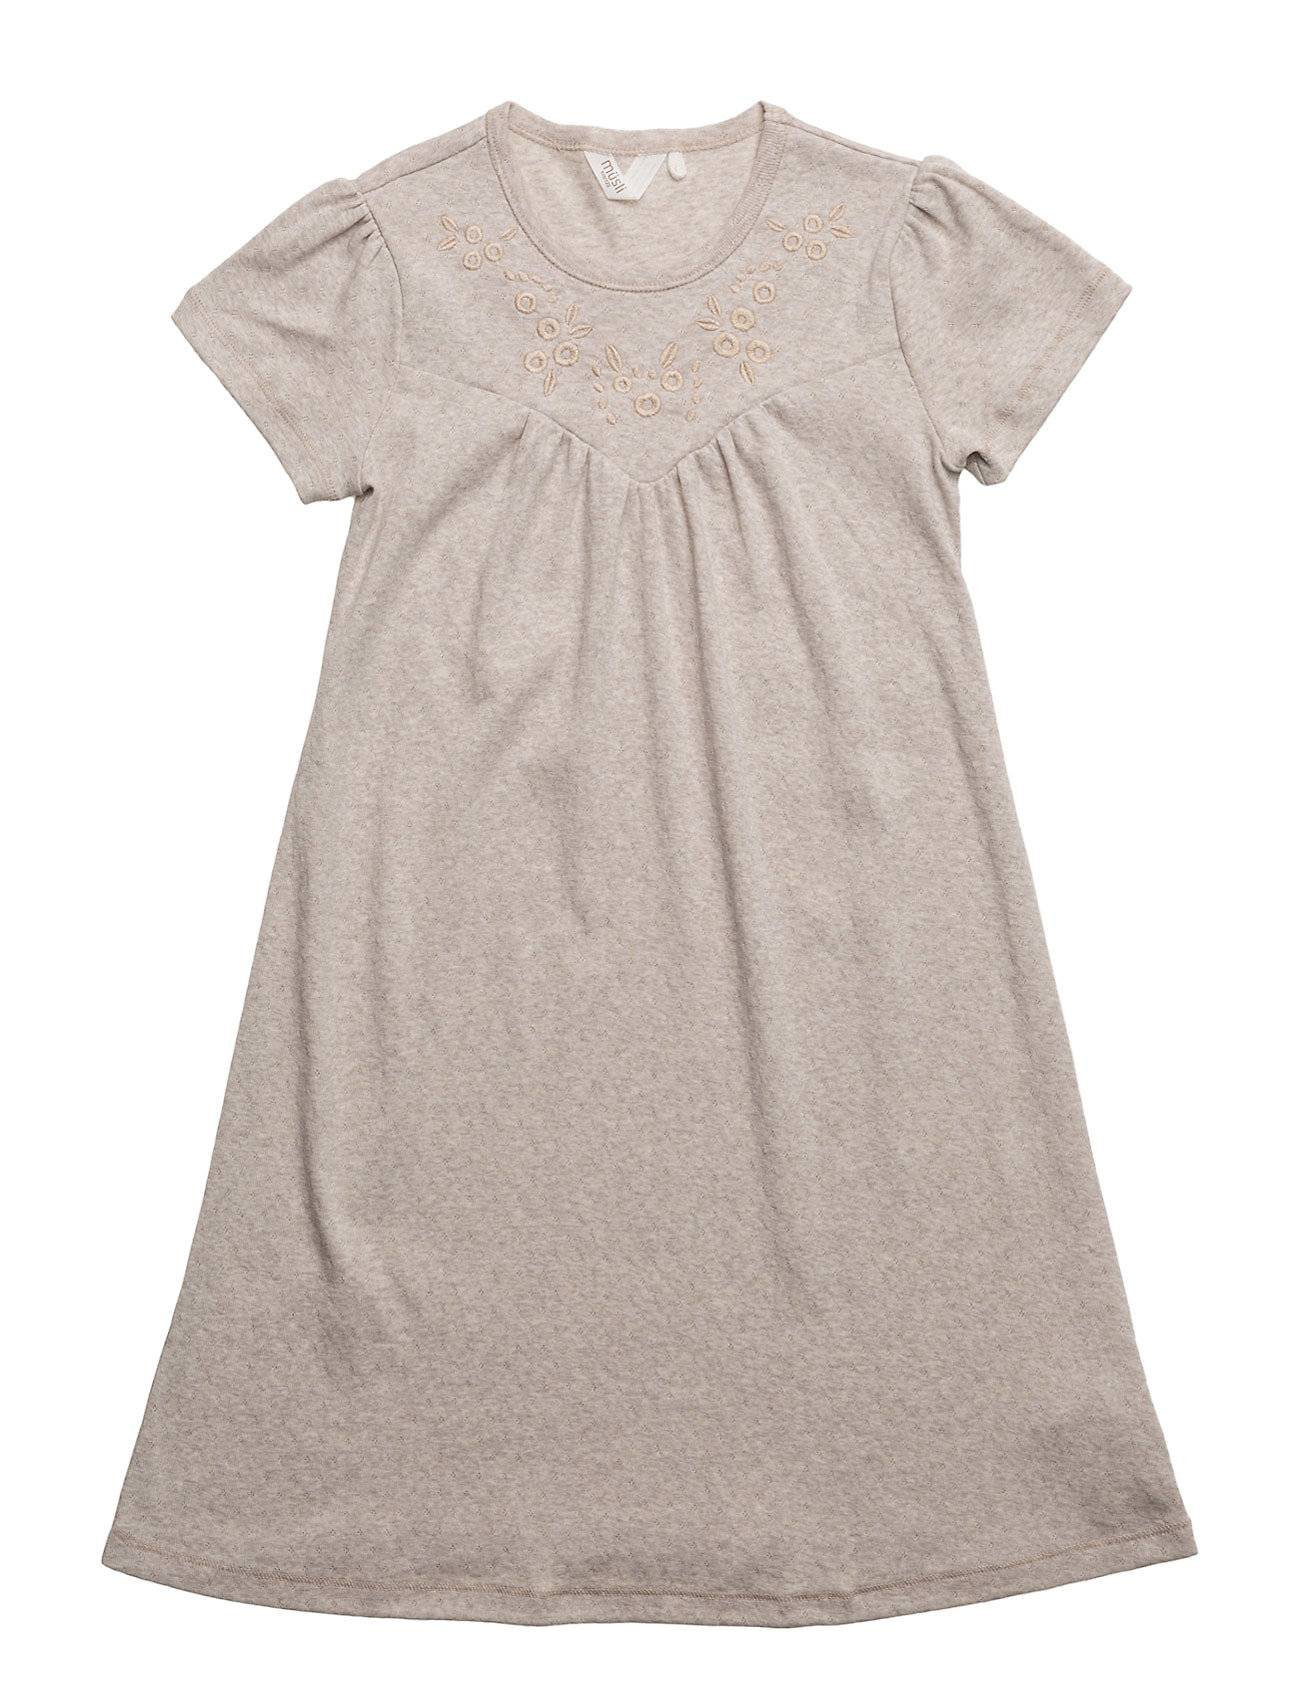 Müsli by Green Cotton Bedtime Dress